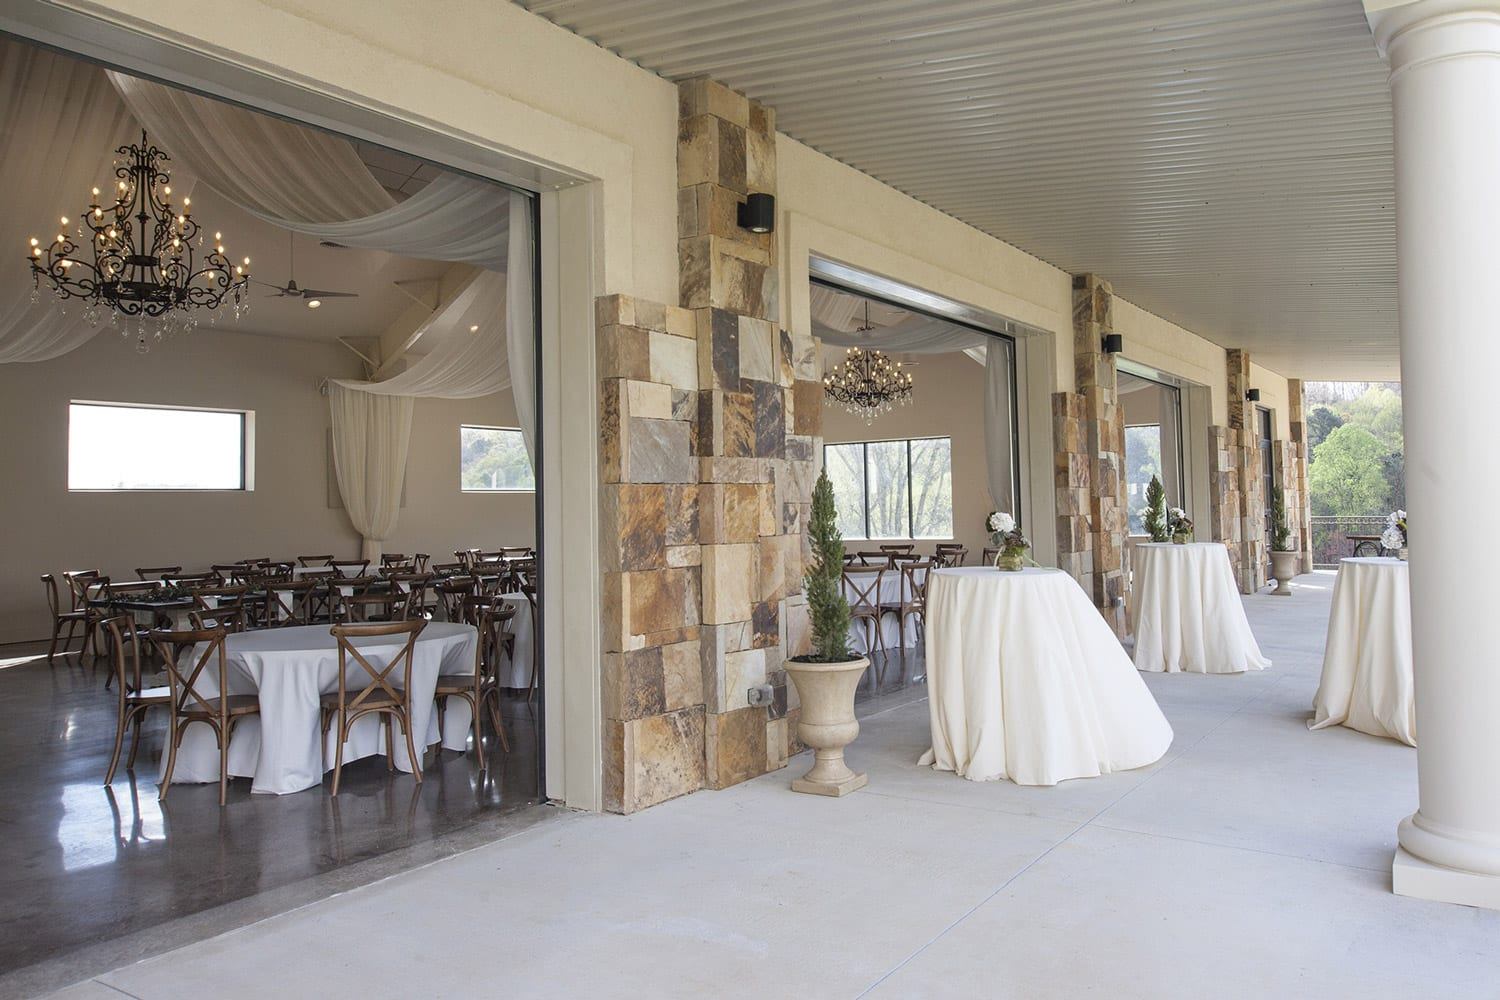 Reception hall porch with open doors